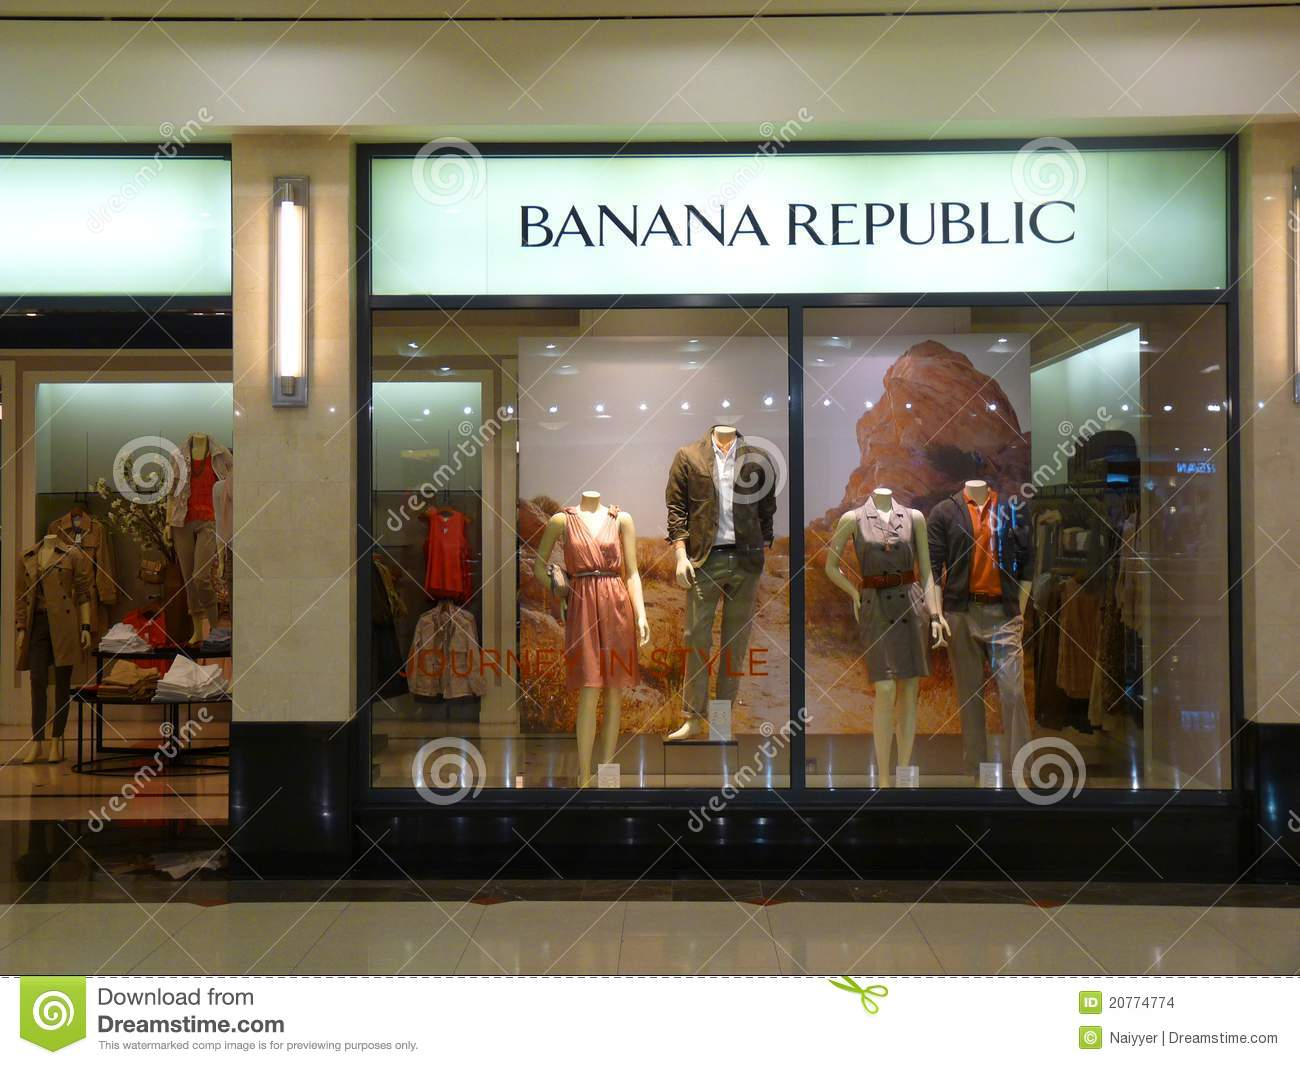 I would like to add here that brand 'Banana Republic' is also a well known American clothing brand. It was found in 1978 by Mel and Patricia Ziegle